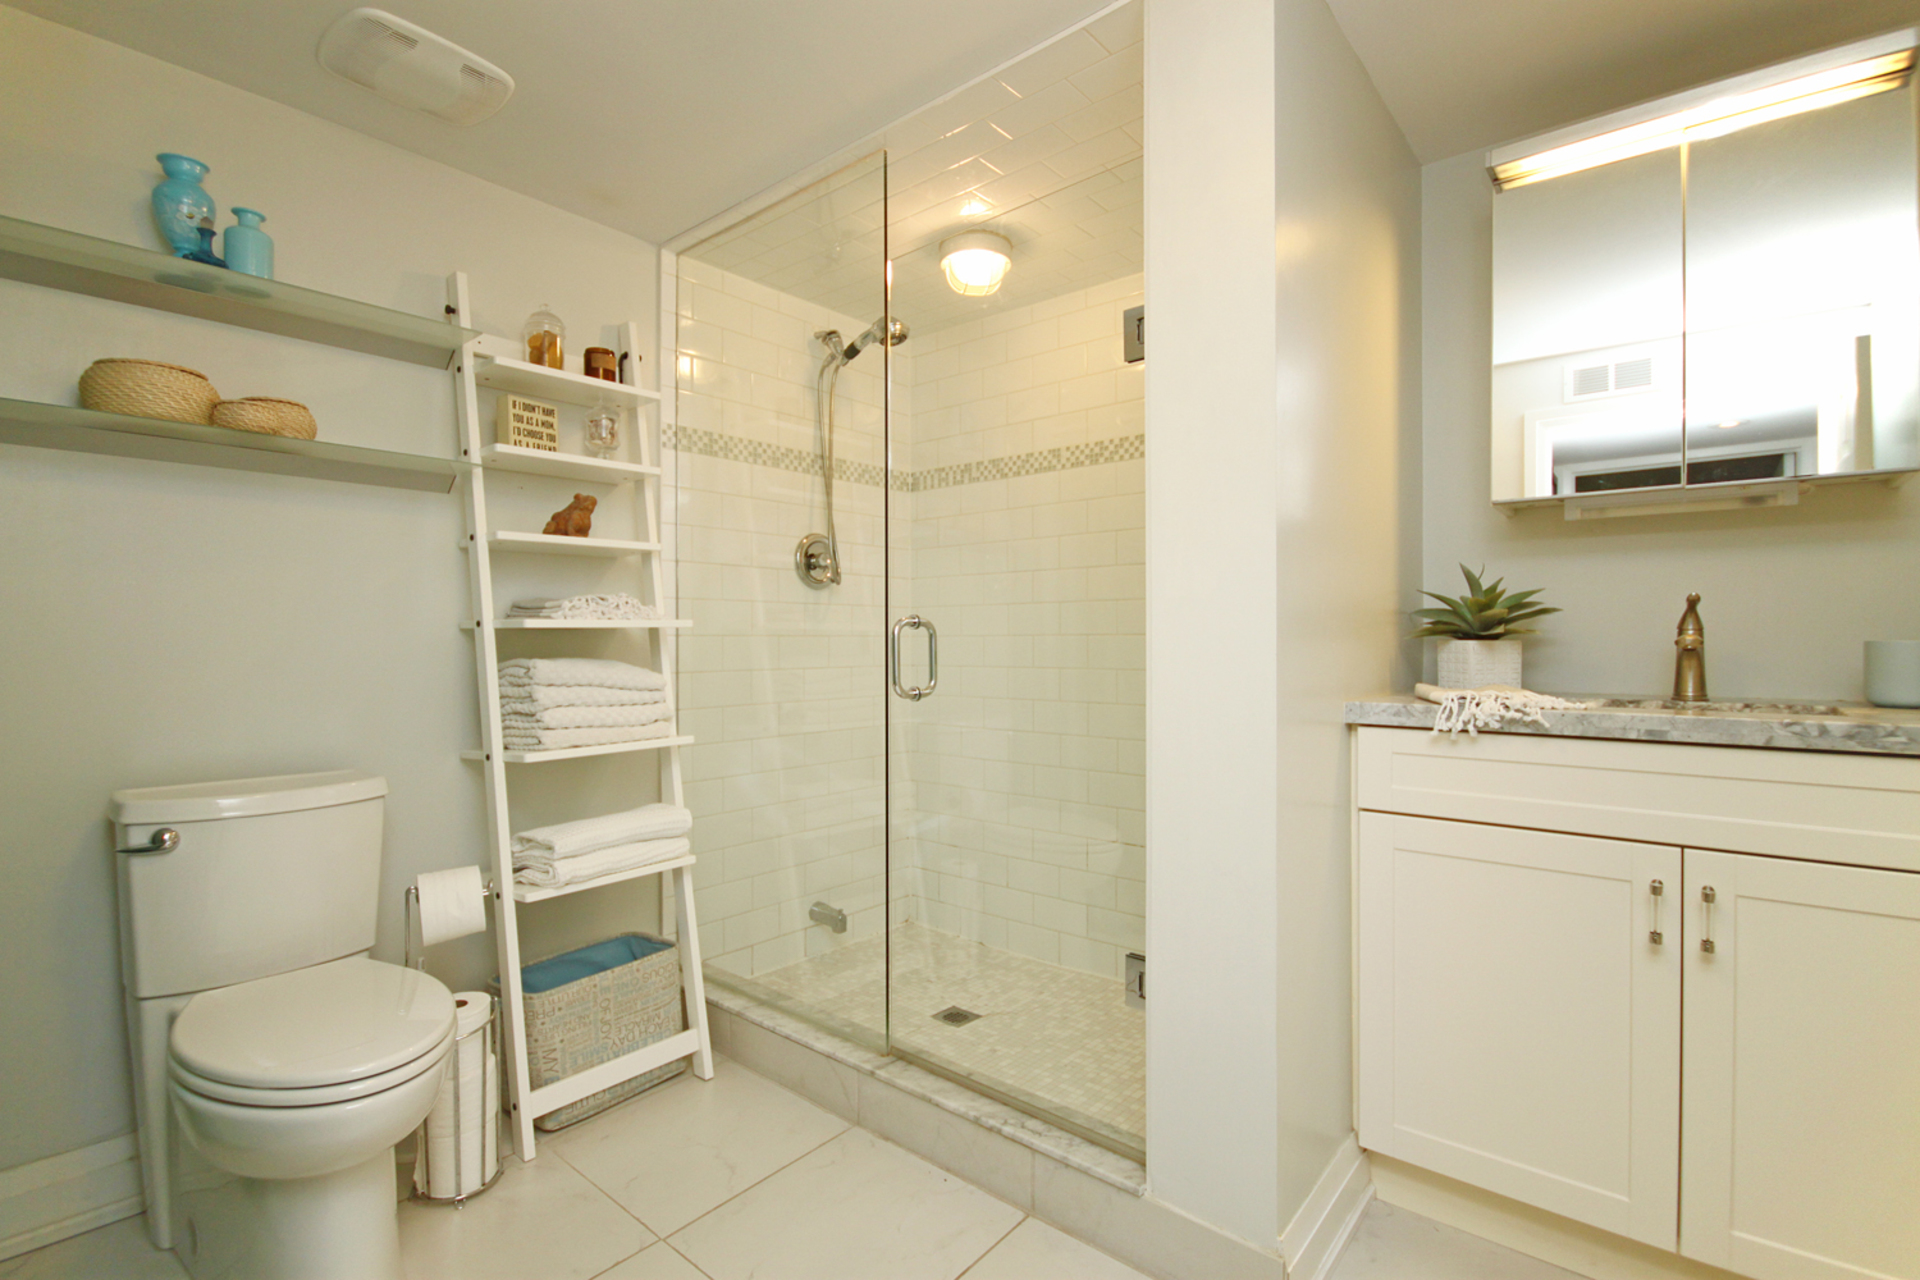 3 Piece Bathroom at 1 Groveland Crescent, Parkwoods-Donalda, Toronto